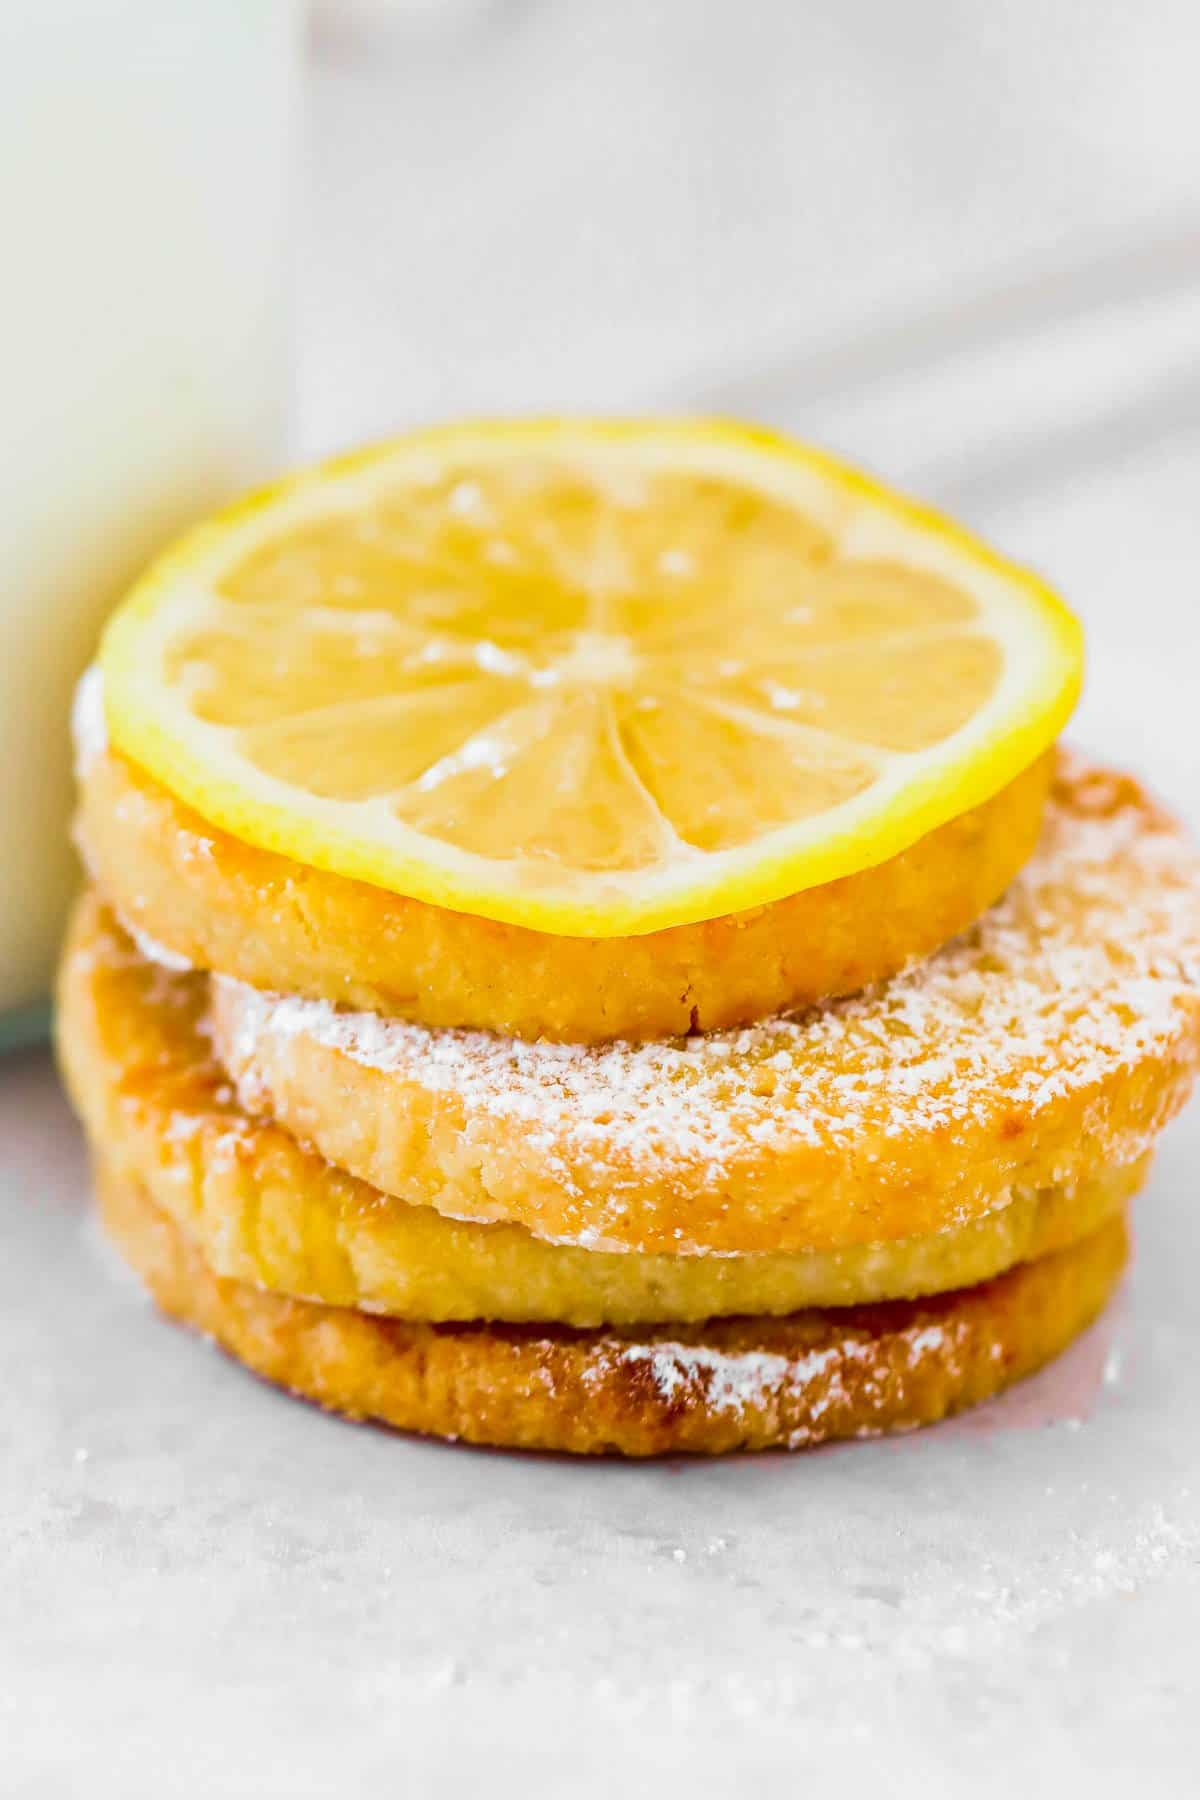 Lemon cookies stacked on top of each other in front of milk